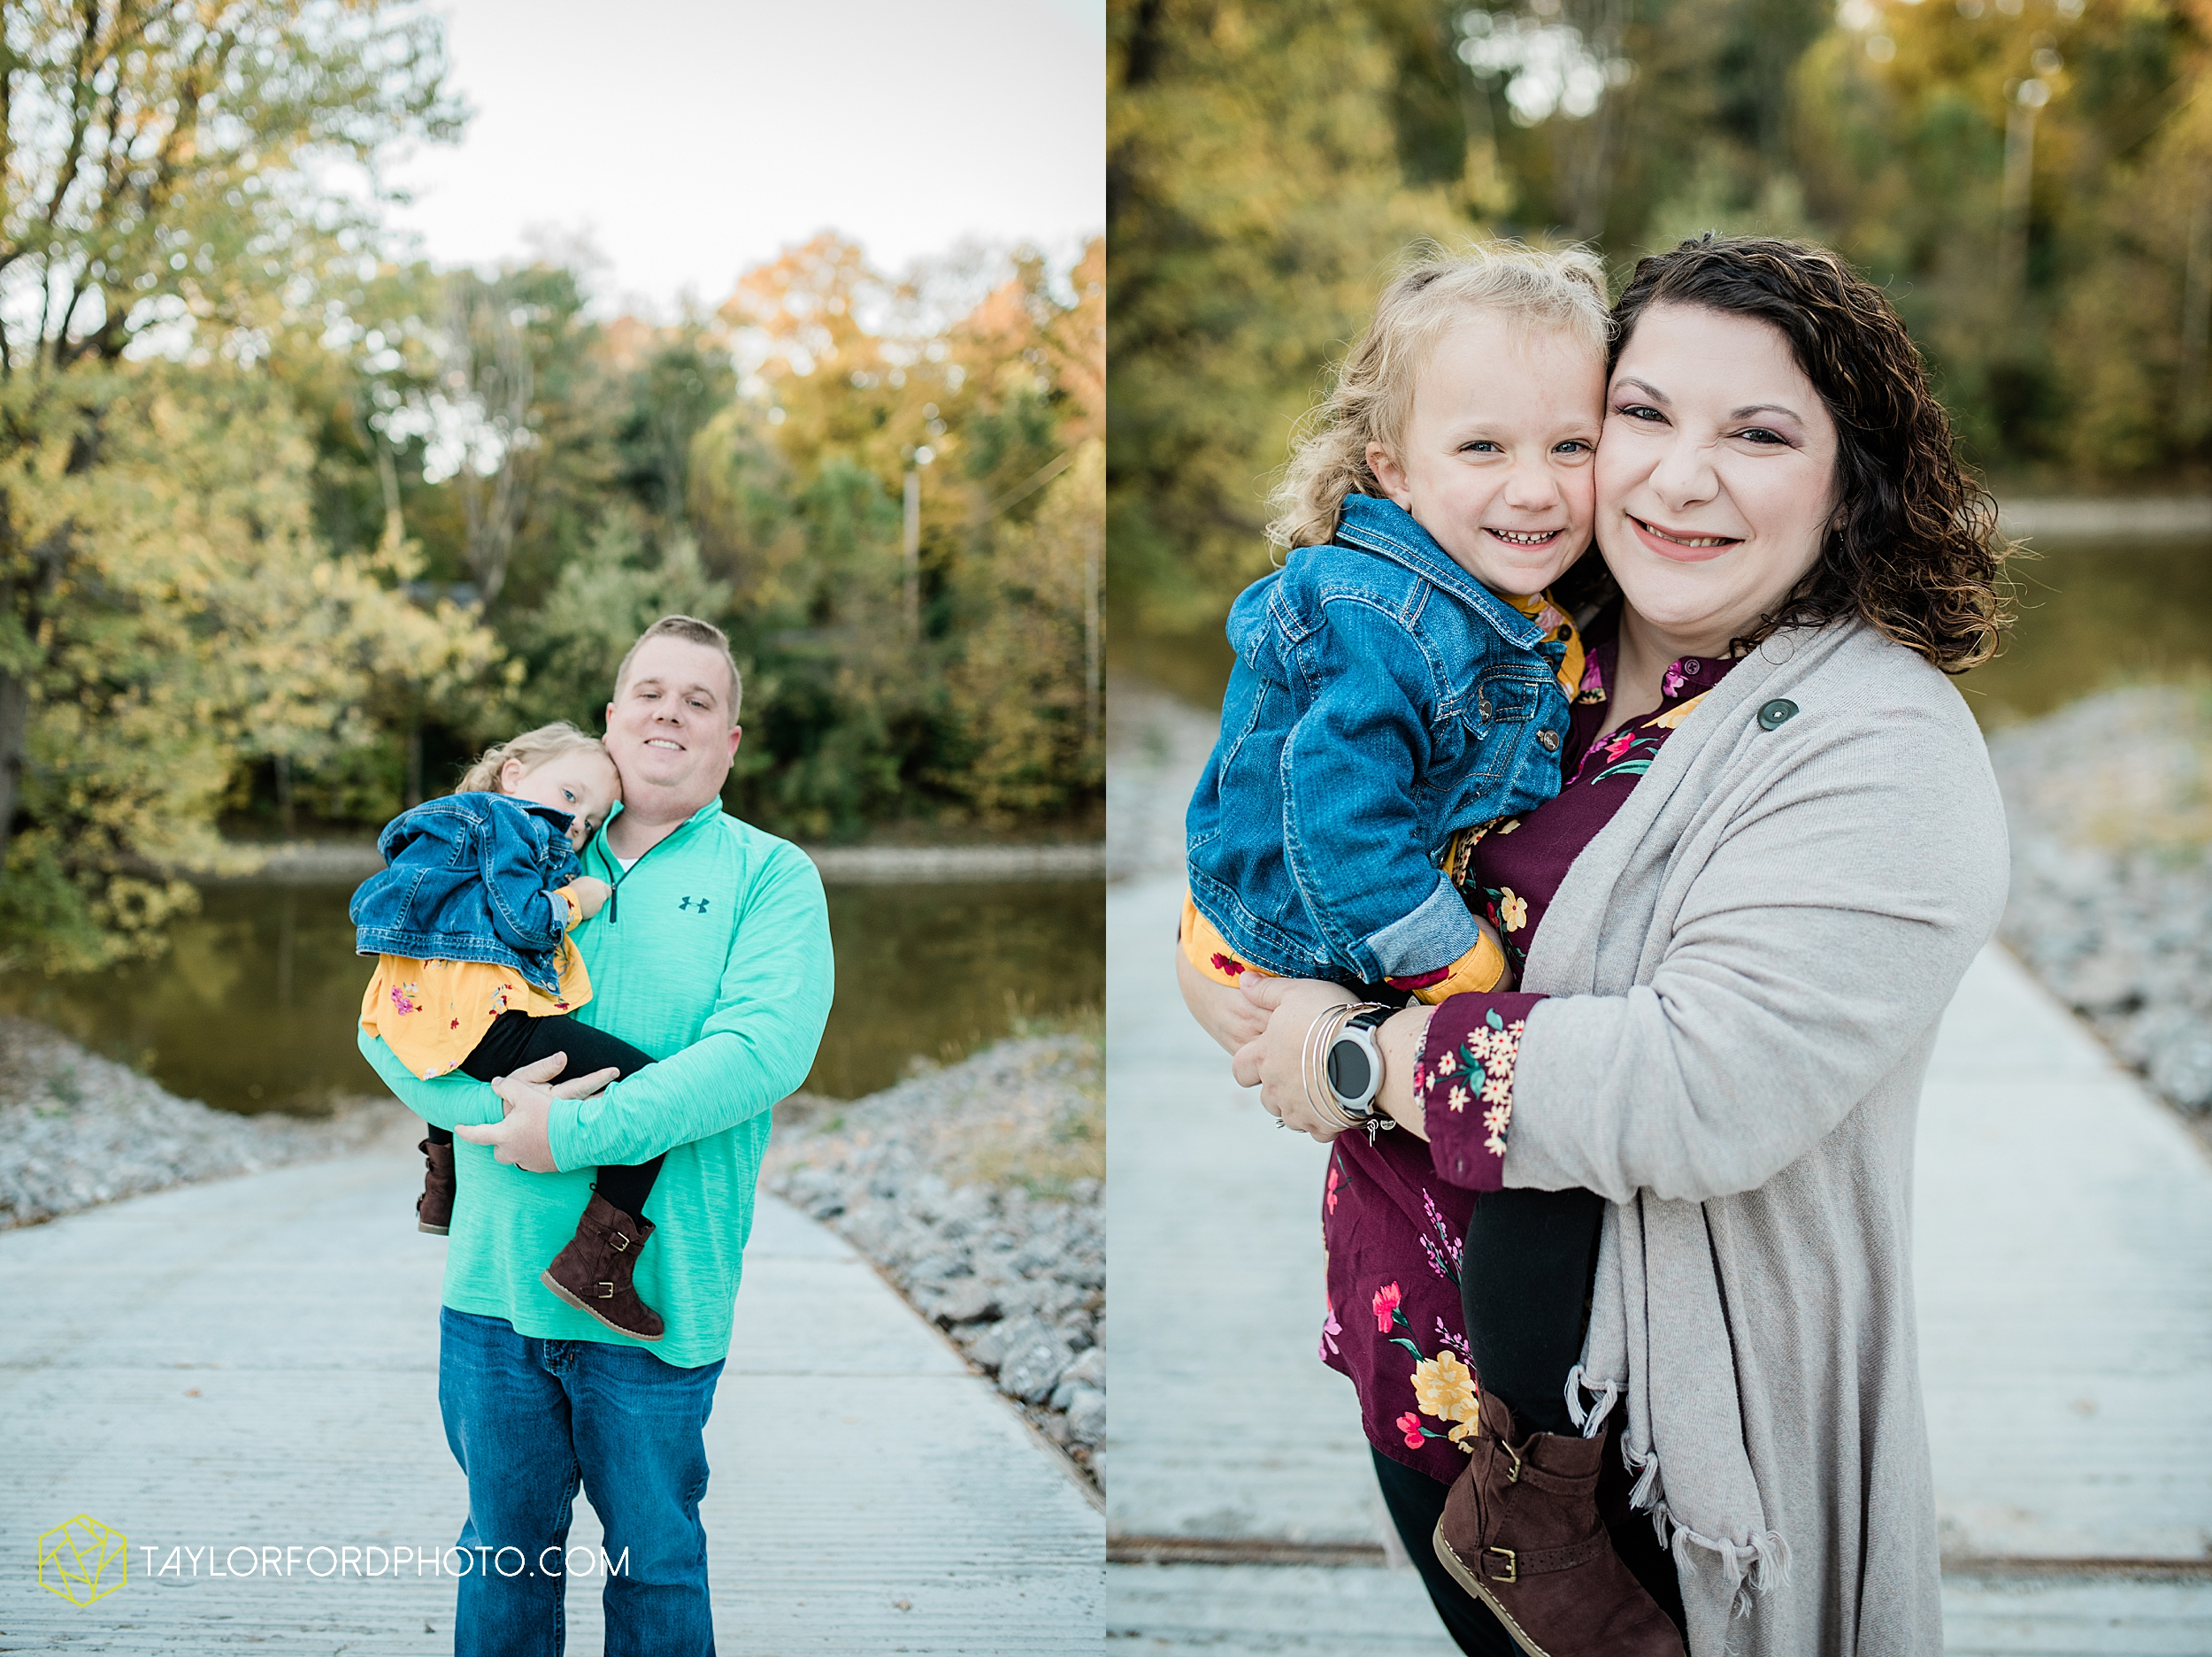 hogan-northeast-fort-wayne-indiana-family-fall-photographer-taylor-ford-photography_1373.jpg